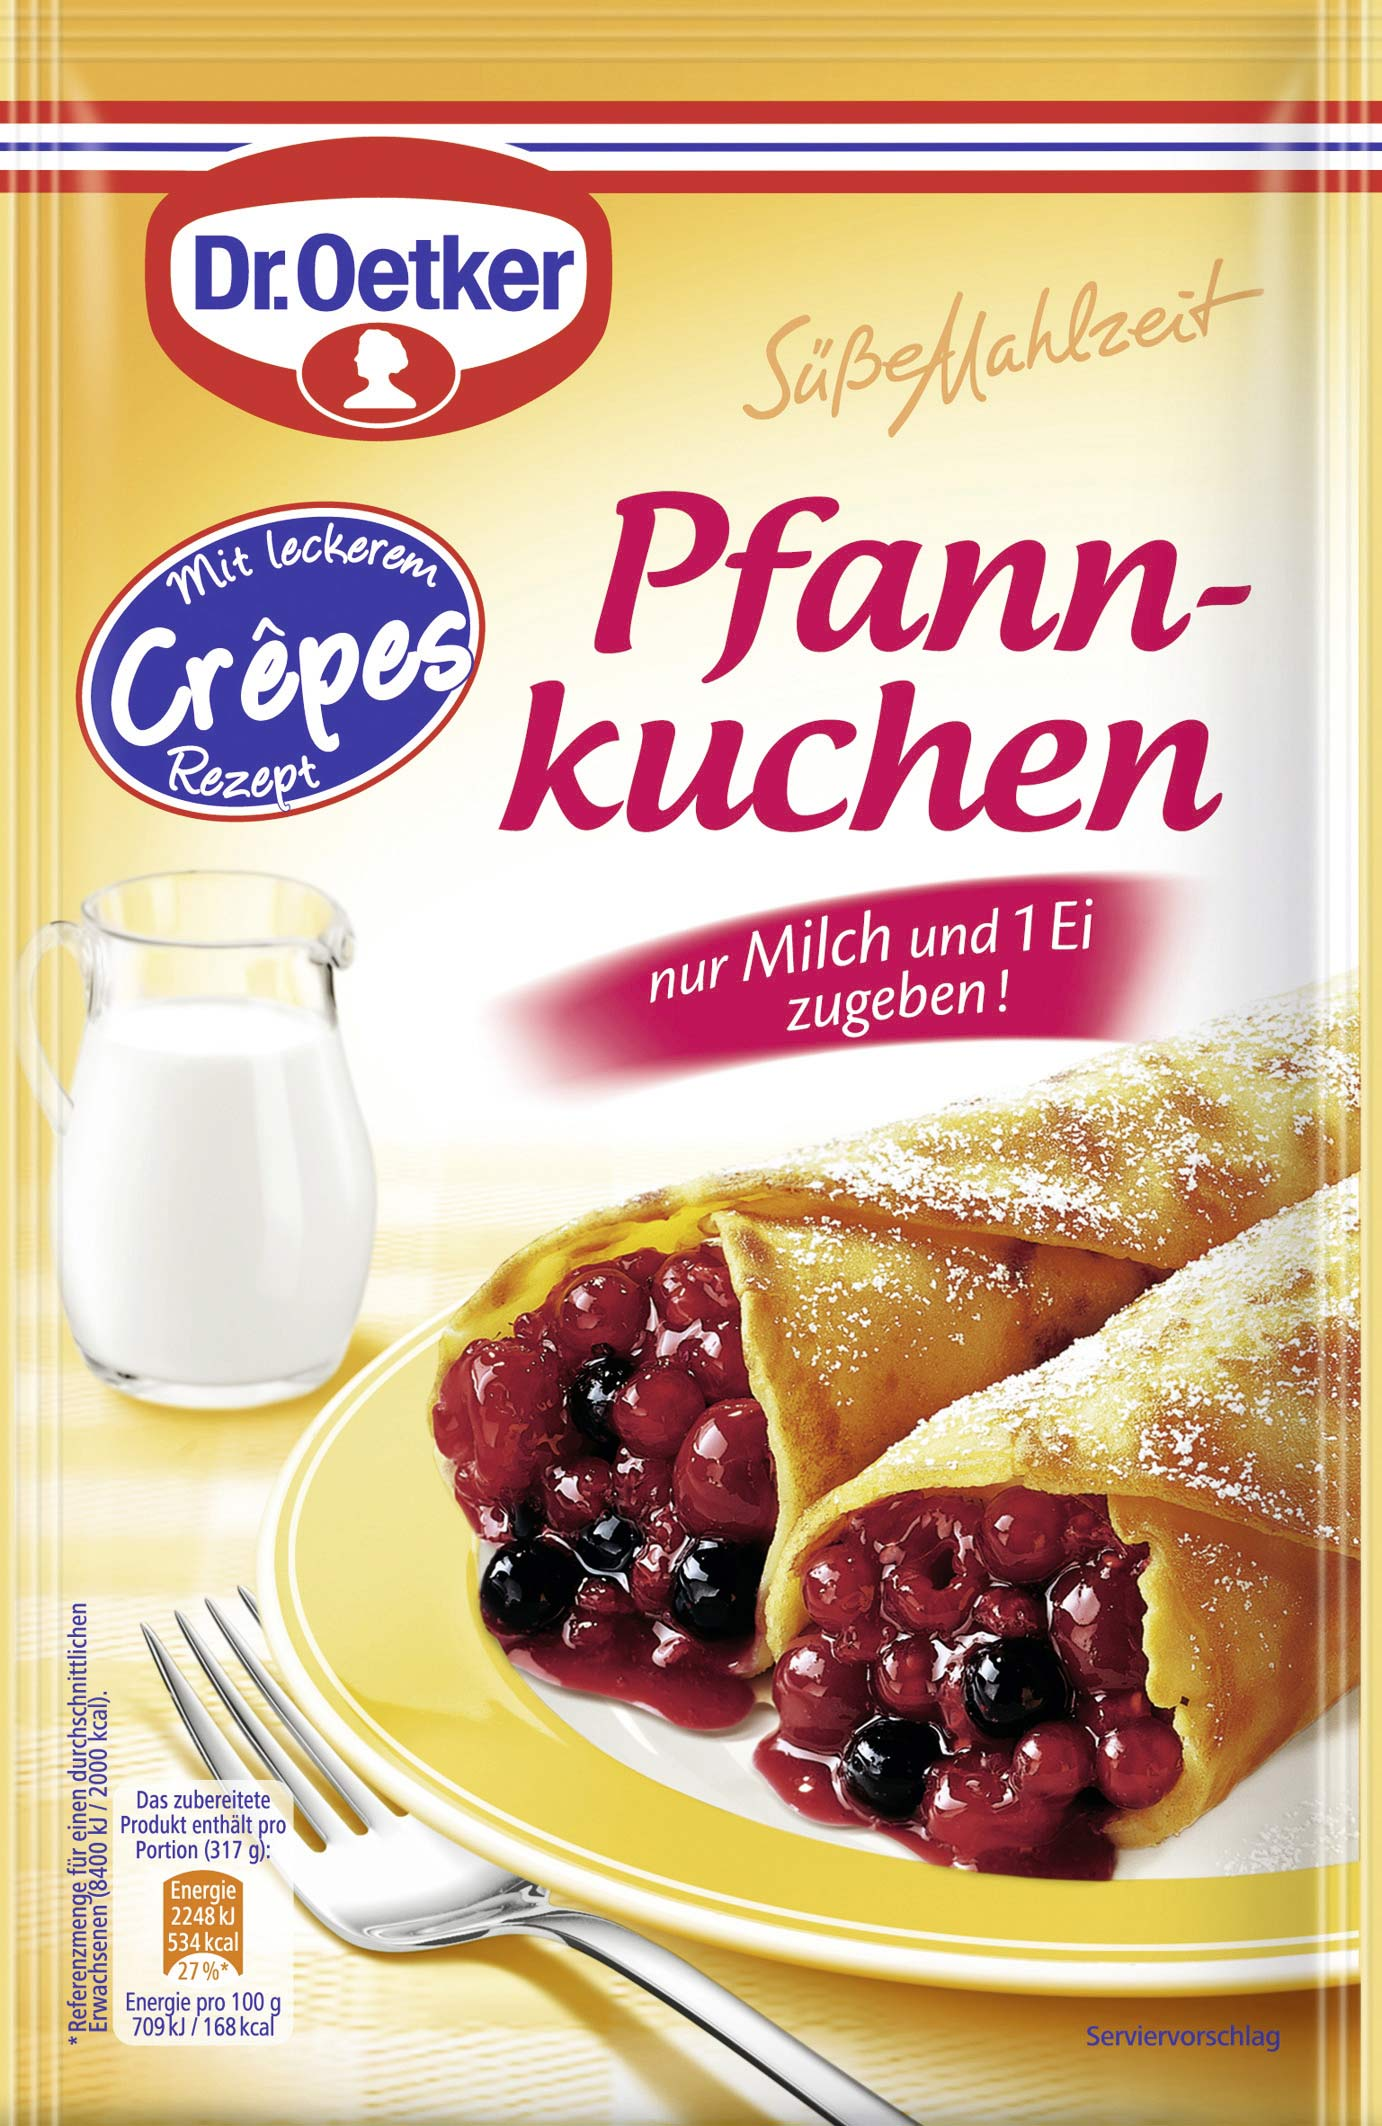 dr oetker s e mahlzeit pfannkuchen fertiggericht 190g online kaufen bei lieferello. Black Bedroom Furniture Sets. Home Design Ideas